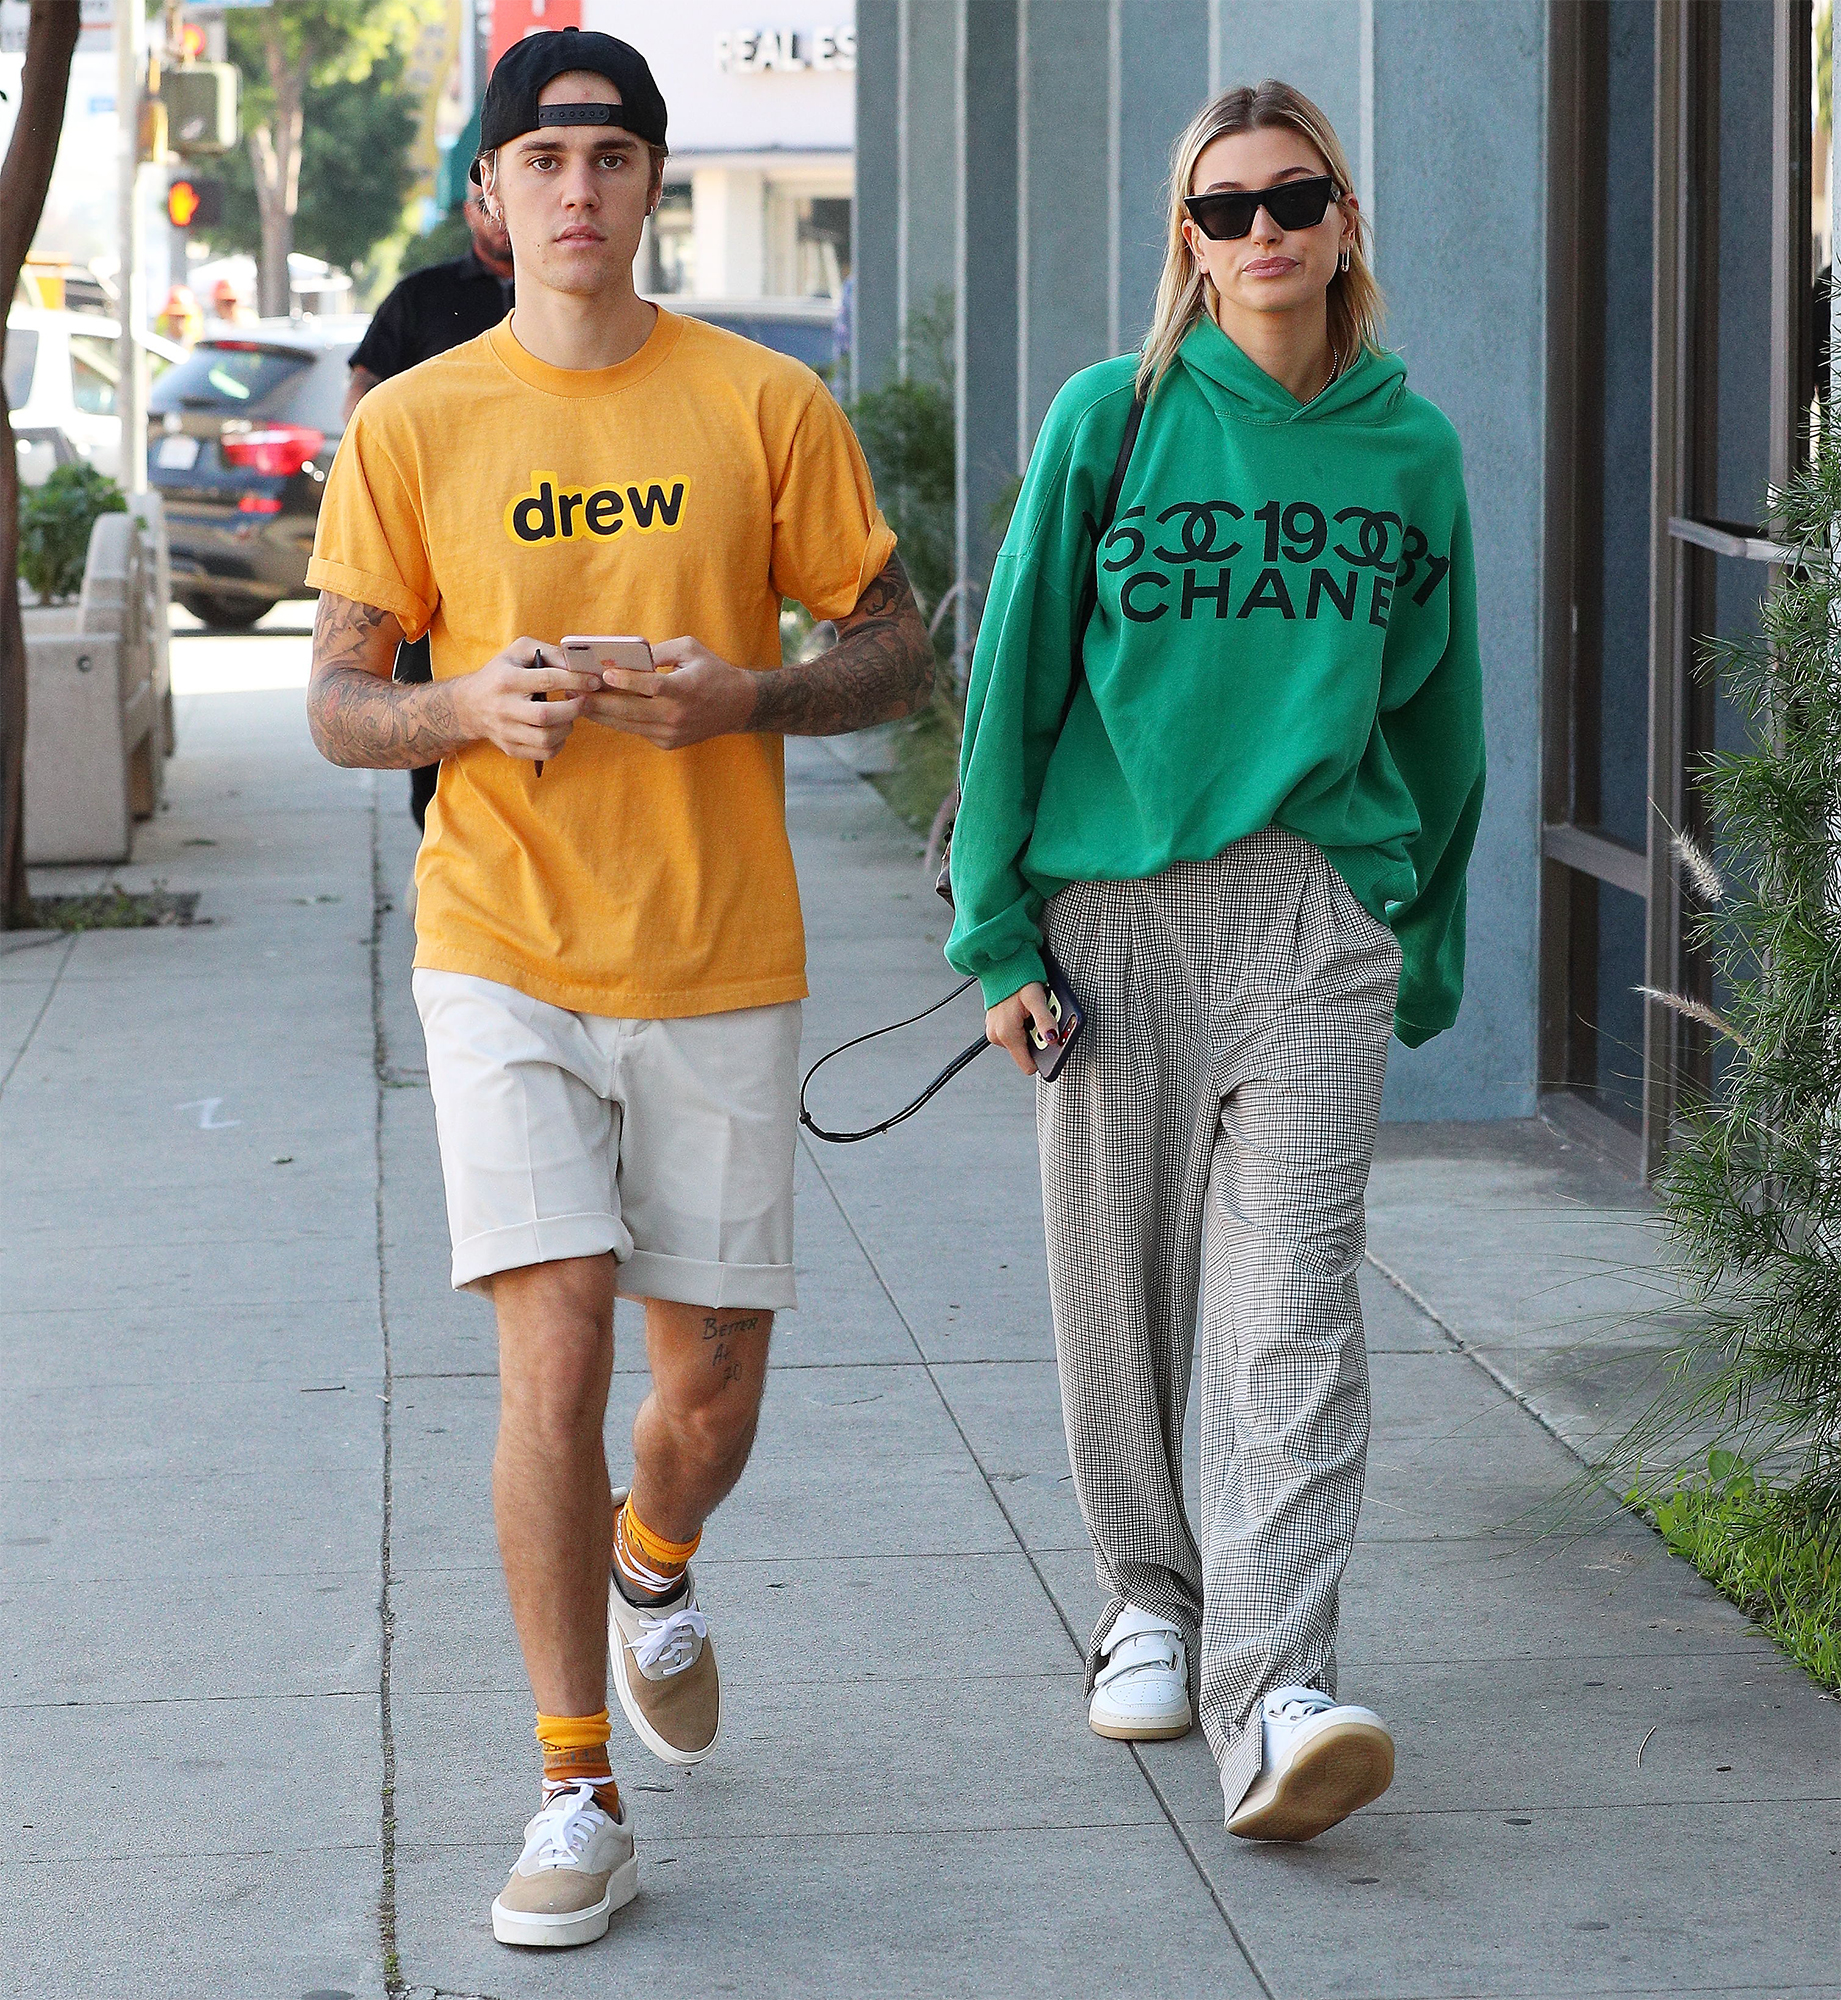 JUSTIN BIEBER has his hair styled while on an outing with hailey baldwin in Los Angeles, CA